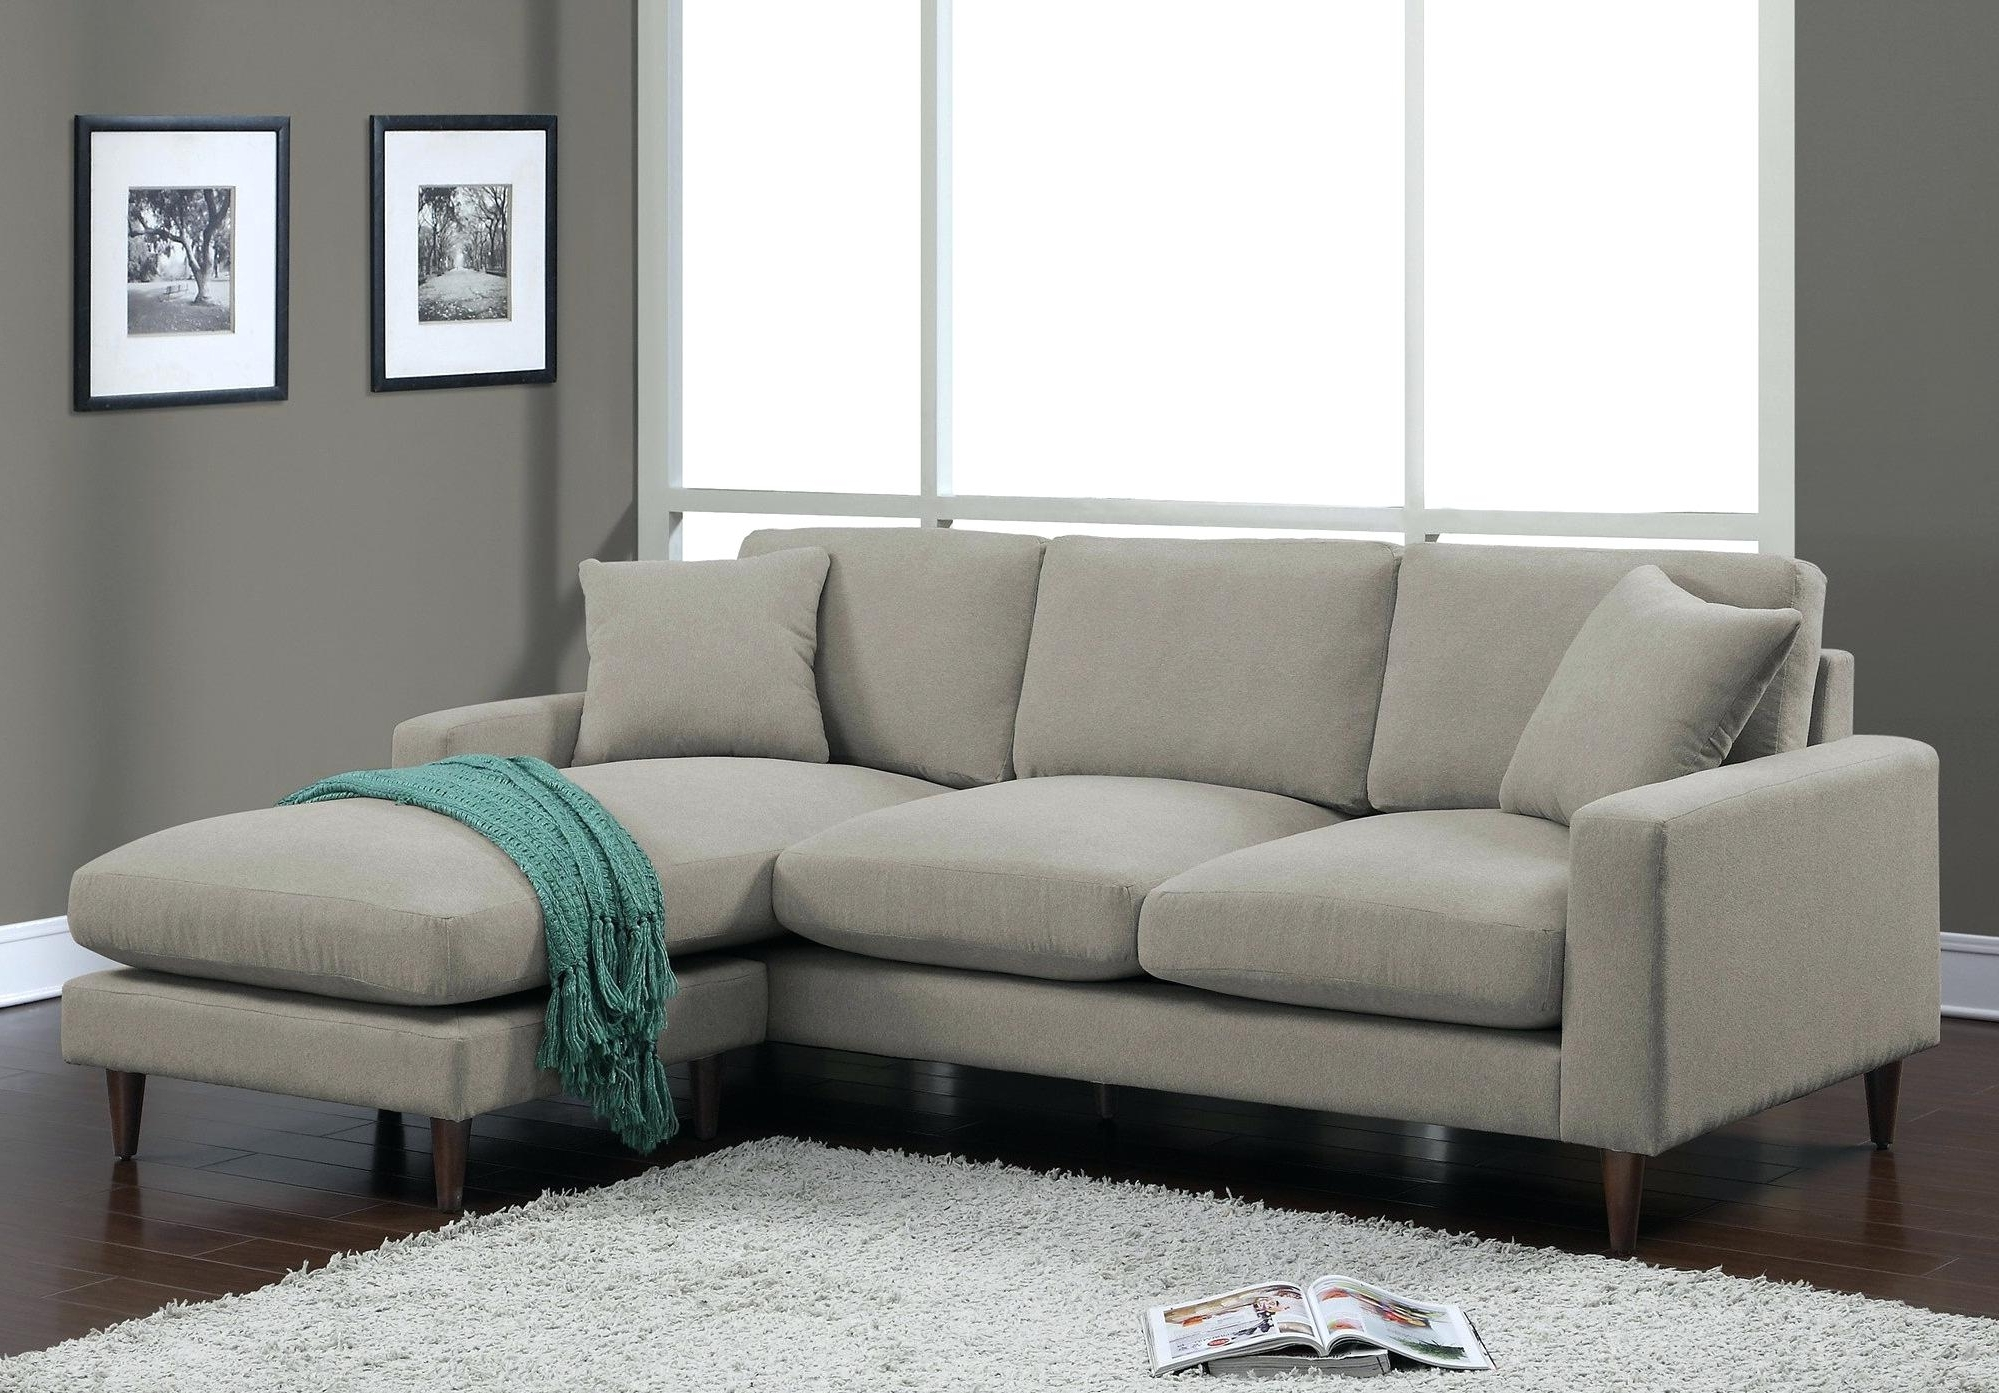 Most Recently Released Light Grey Sectional Sofa Waverunner Modular Divani Casa Quebec For Quebec Sectional Sofas (View 11 of 15)